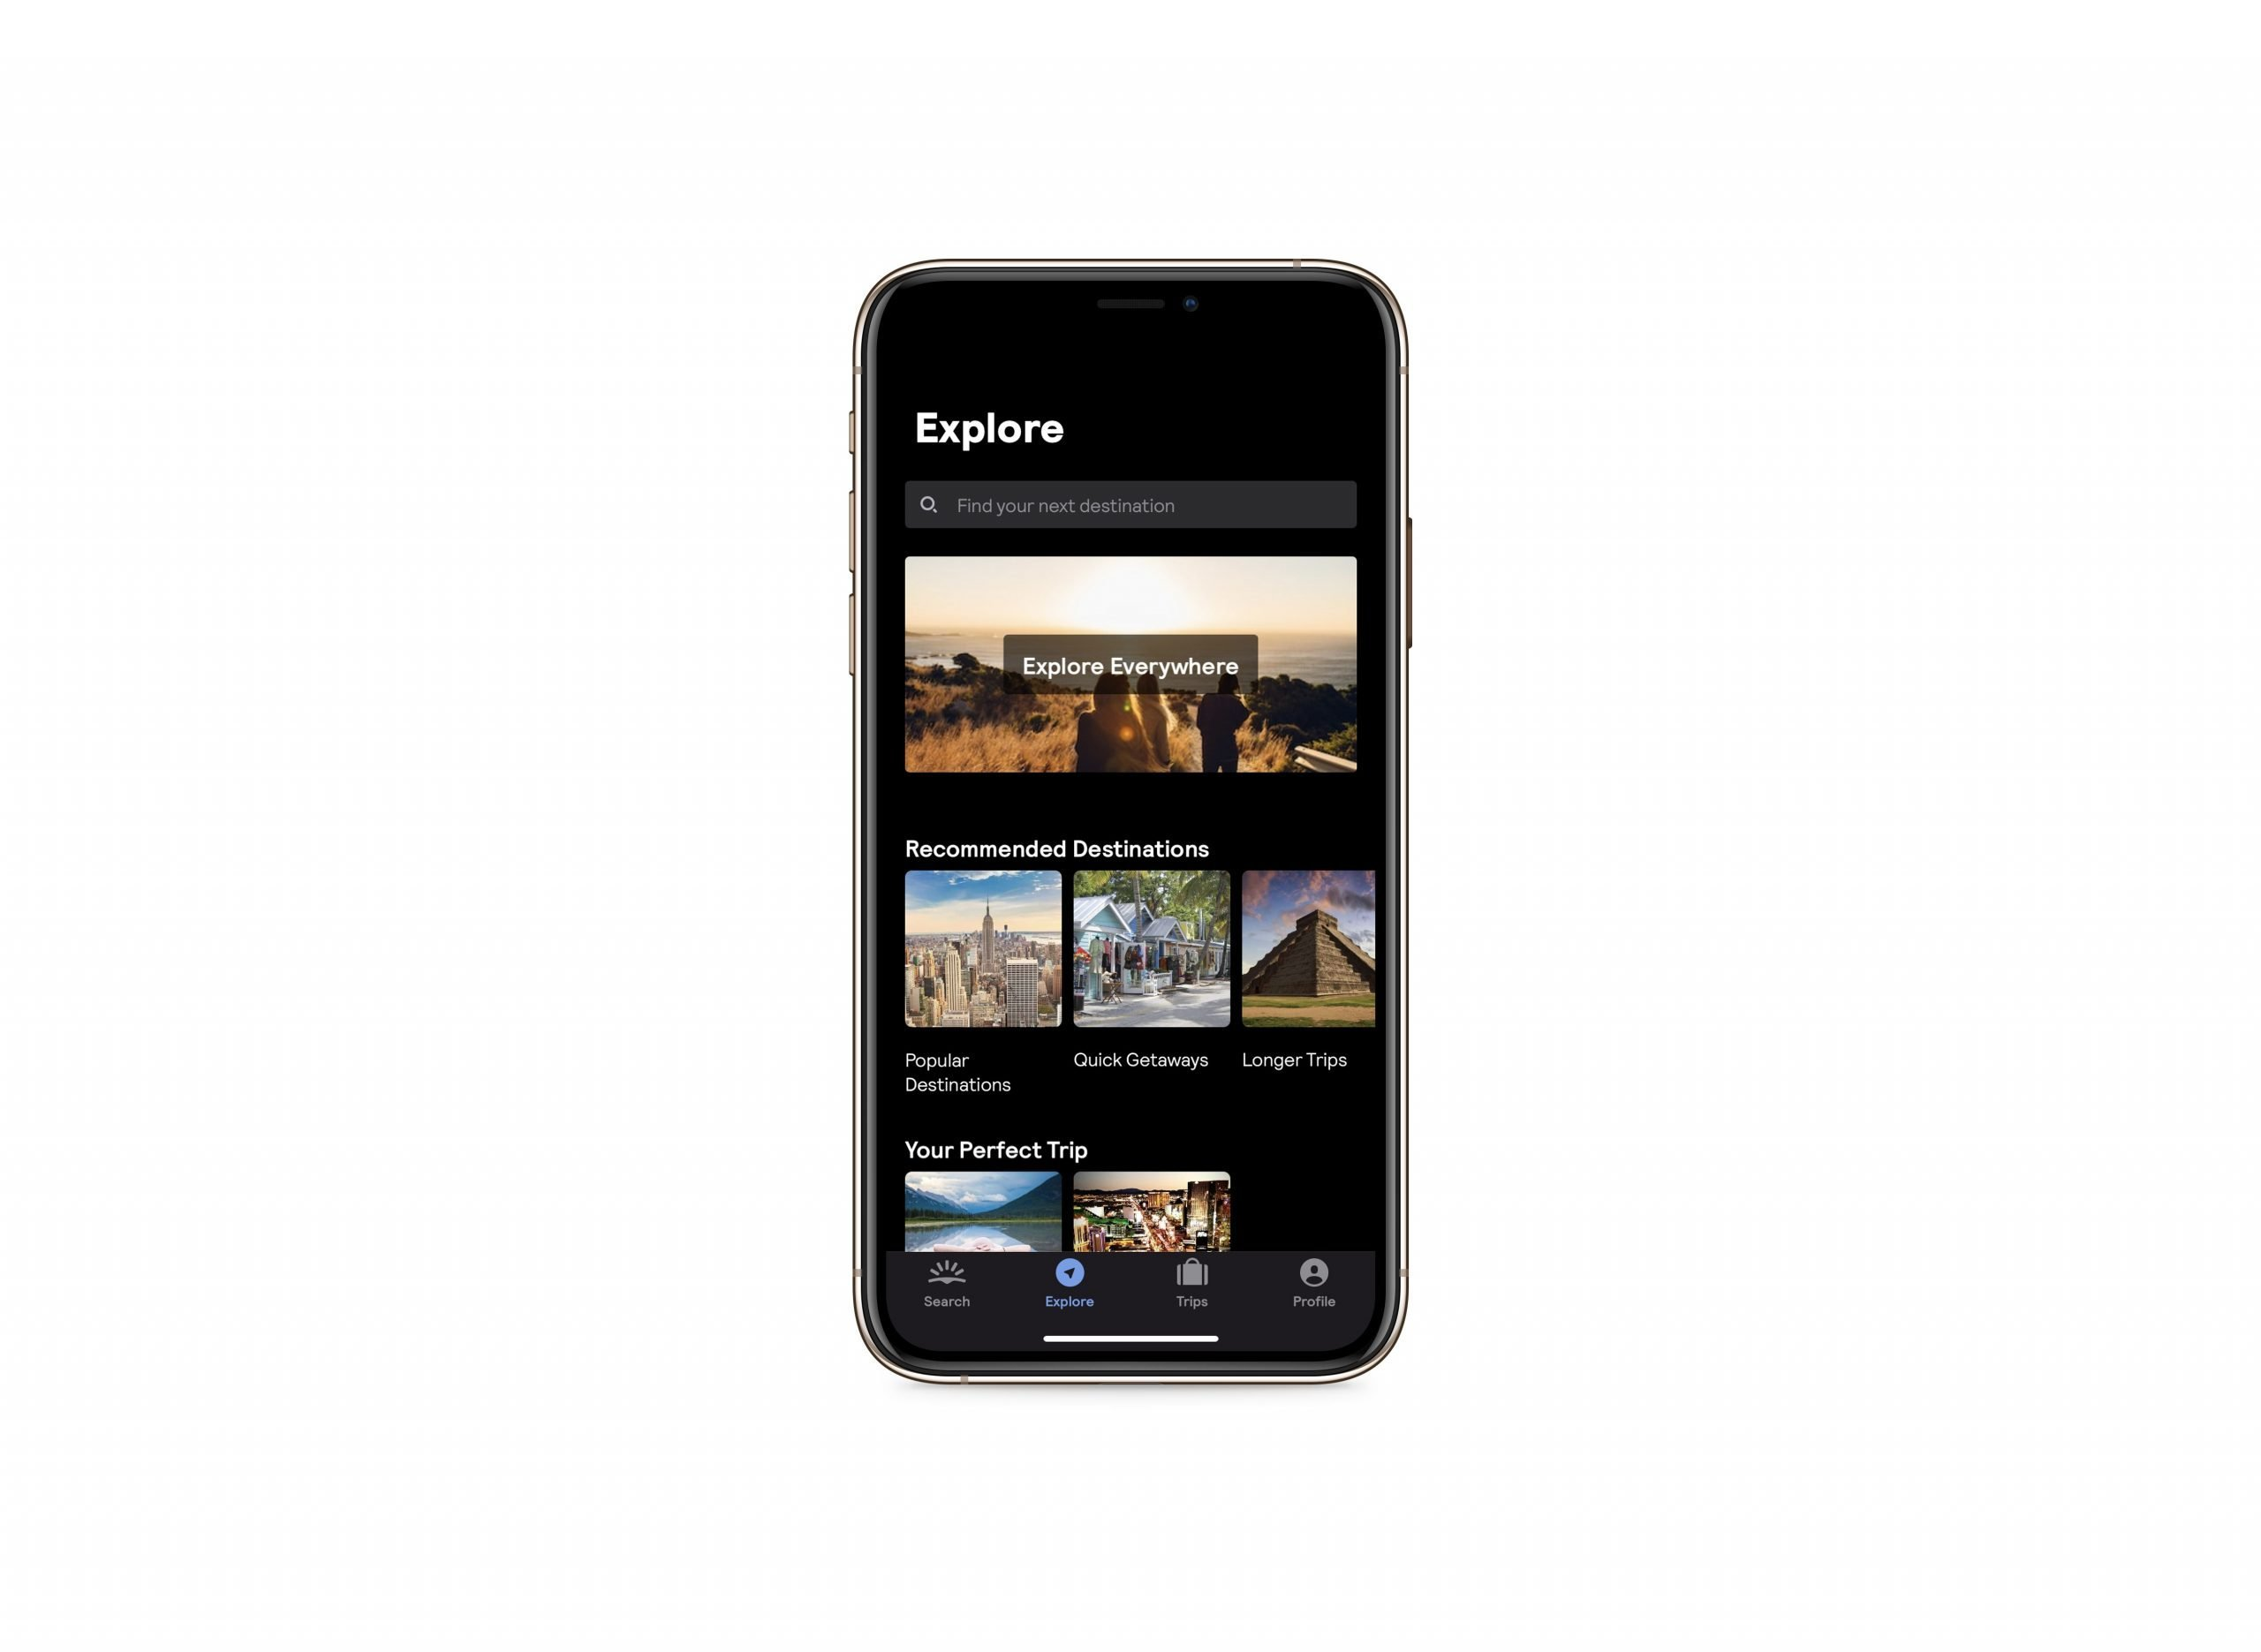 How to find cheap flights - Image of mobile phone showing the explore page of the Skyscanner app. There is an option to Explore Everywhere with images of some recommended destinations.